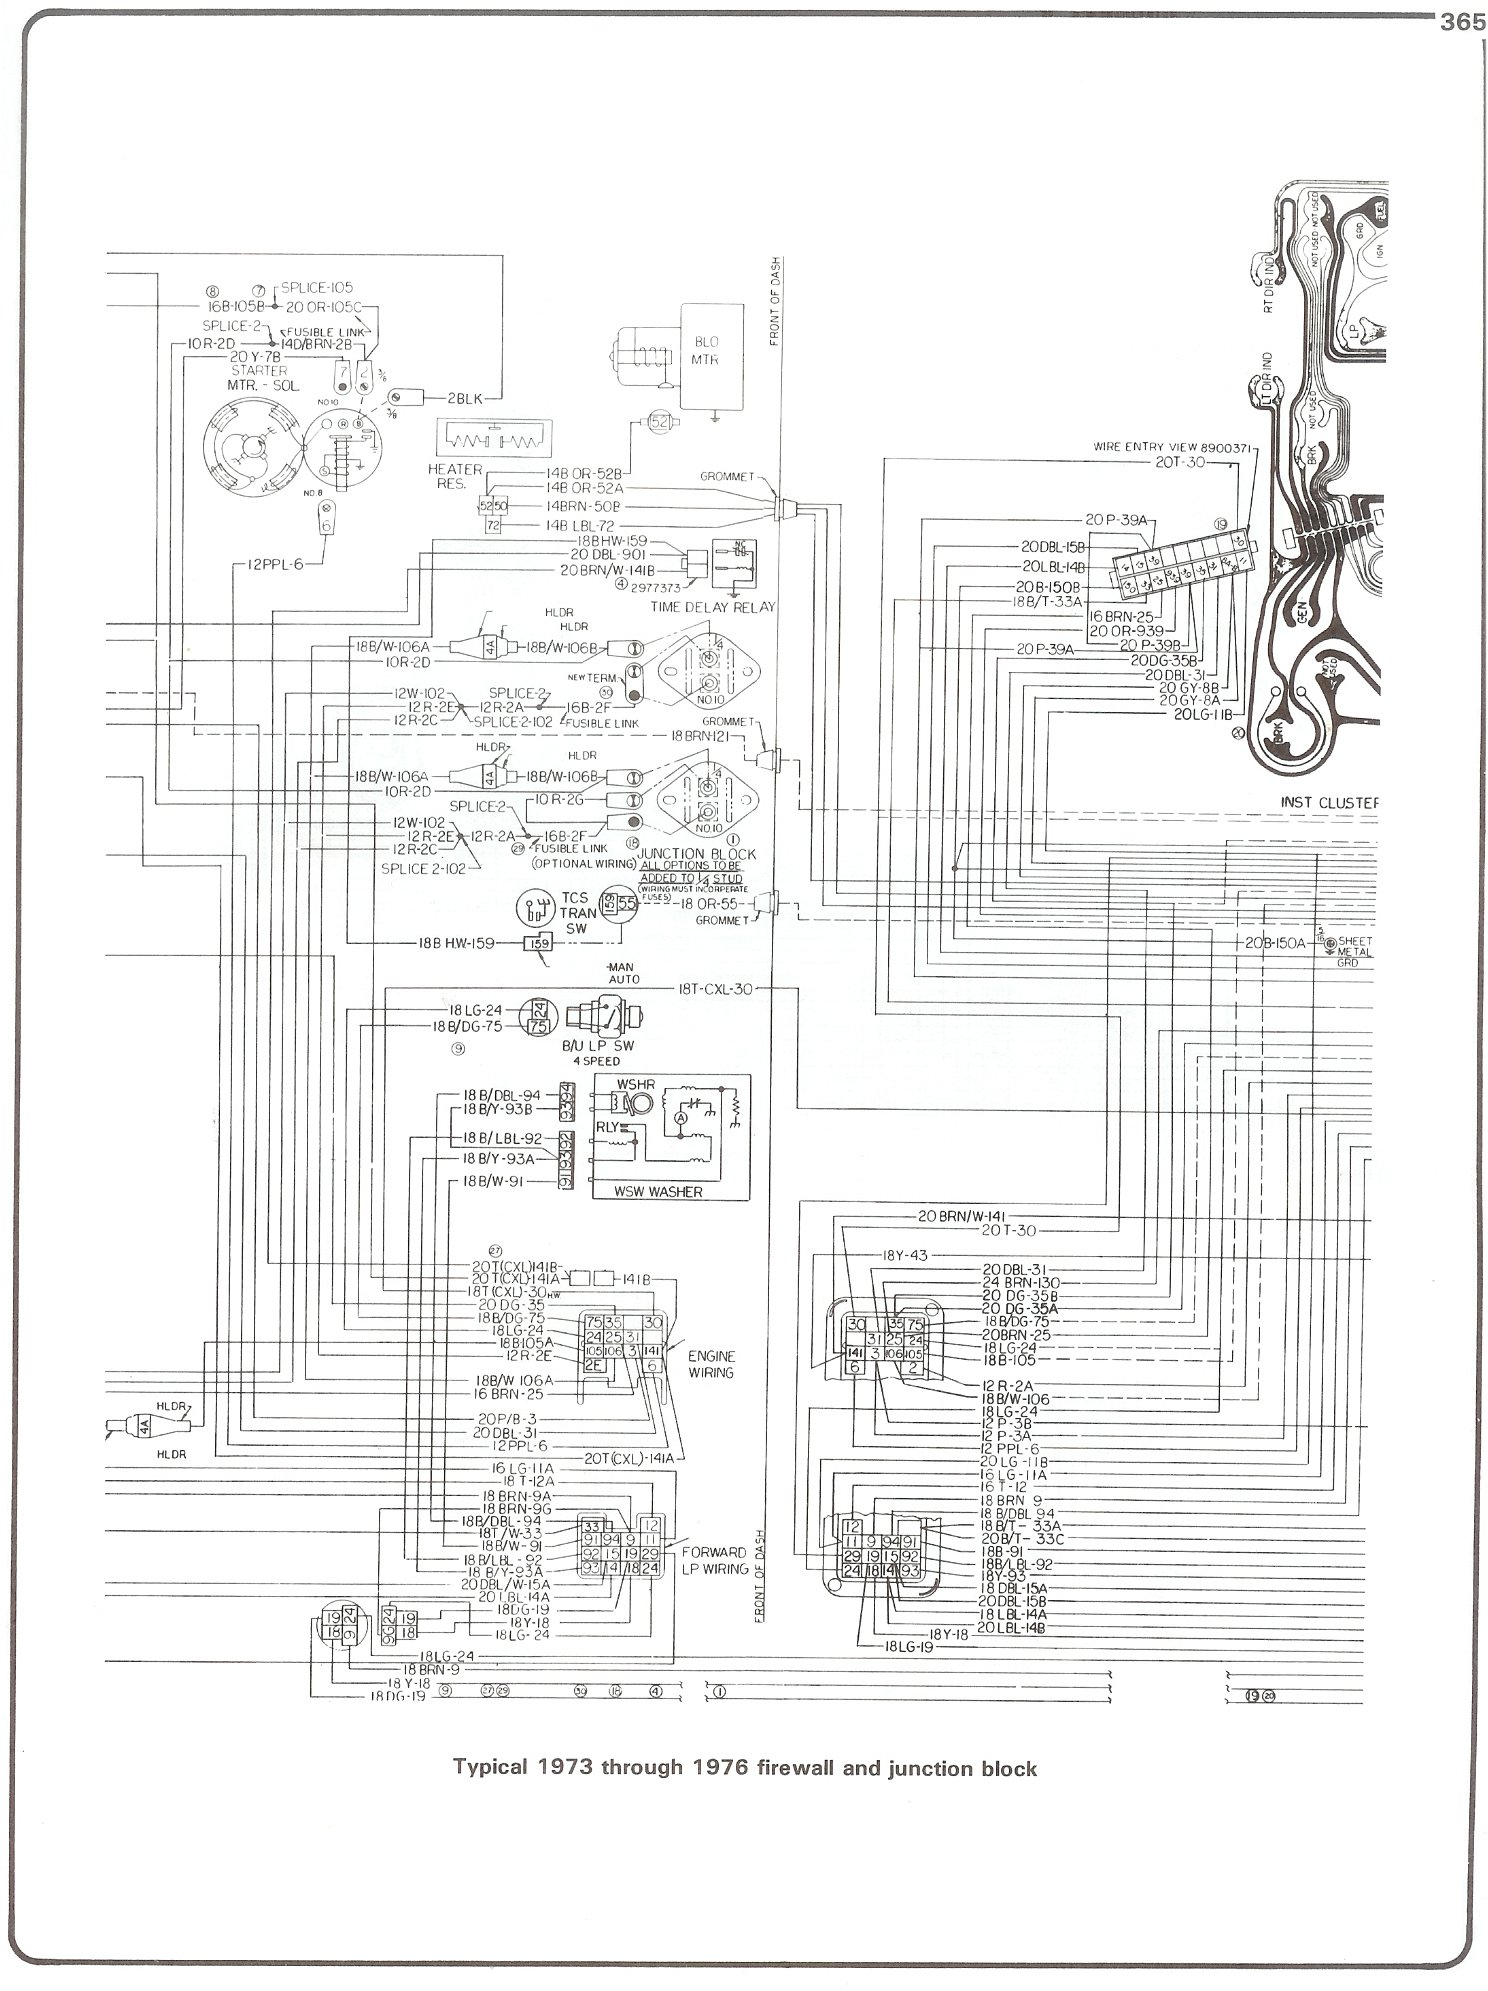 76 c10 wiring diagram